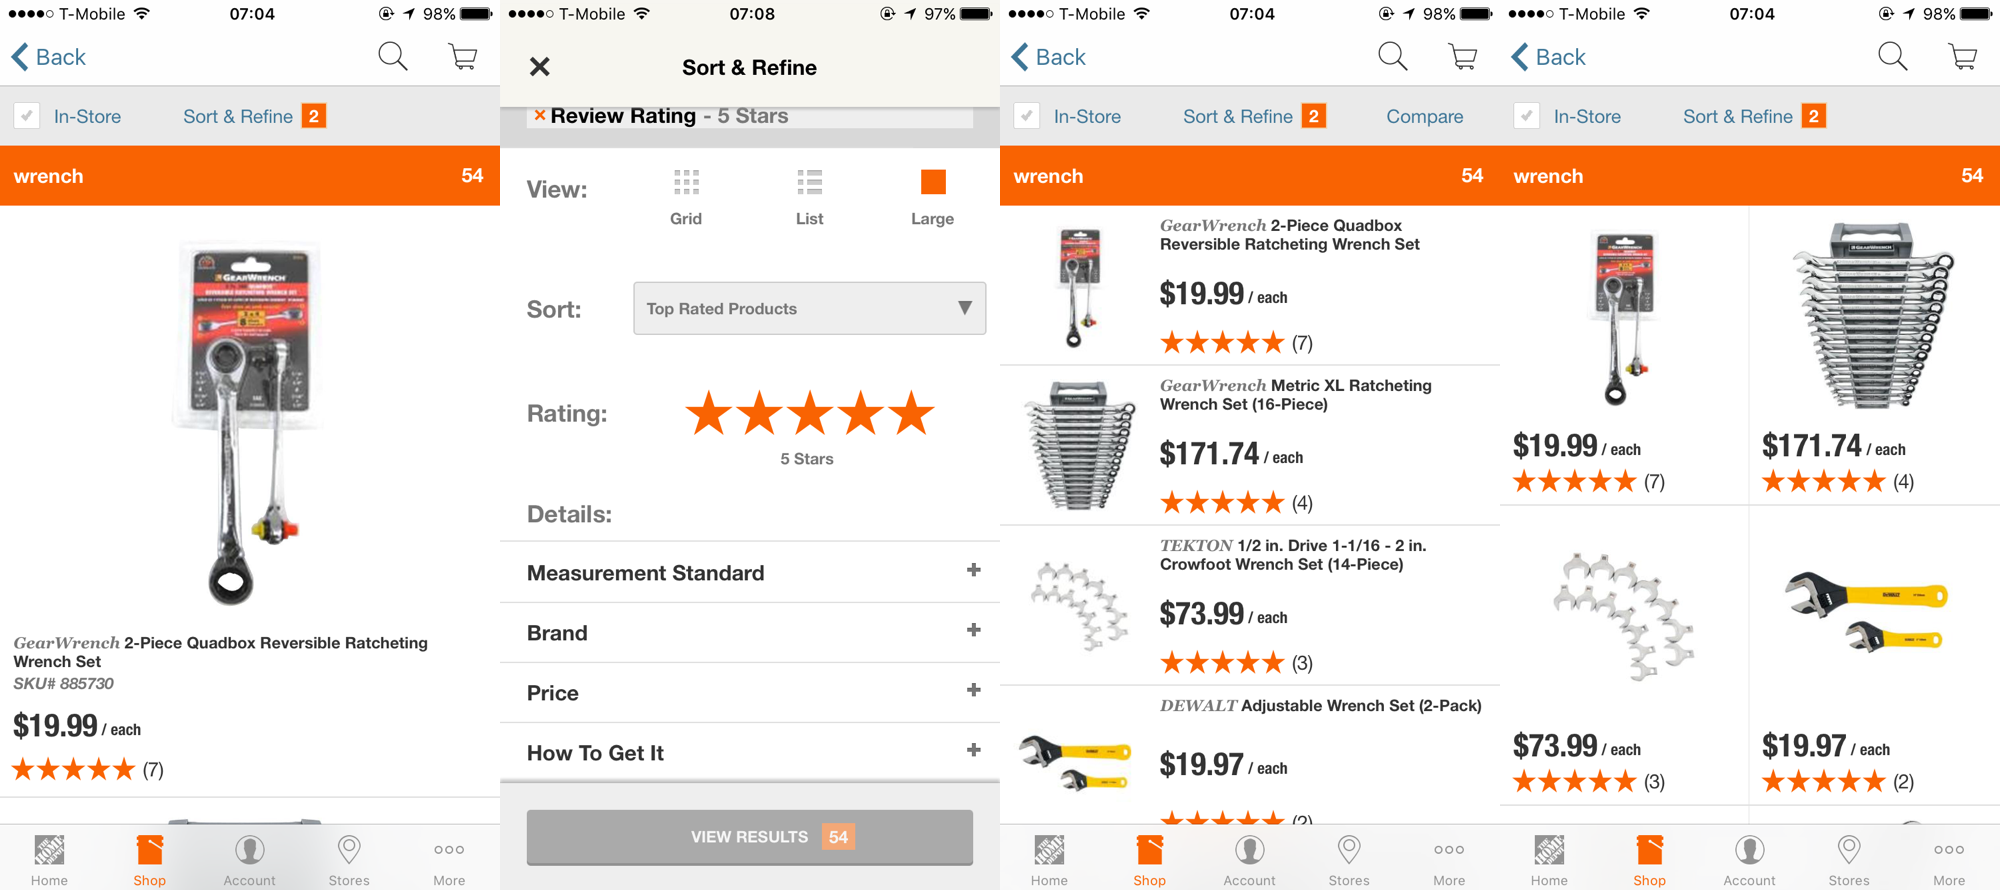 20 best practices for mobile app search homedepot has three viewing options but theres not much value added from one option to biocorpaavc